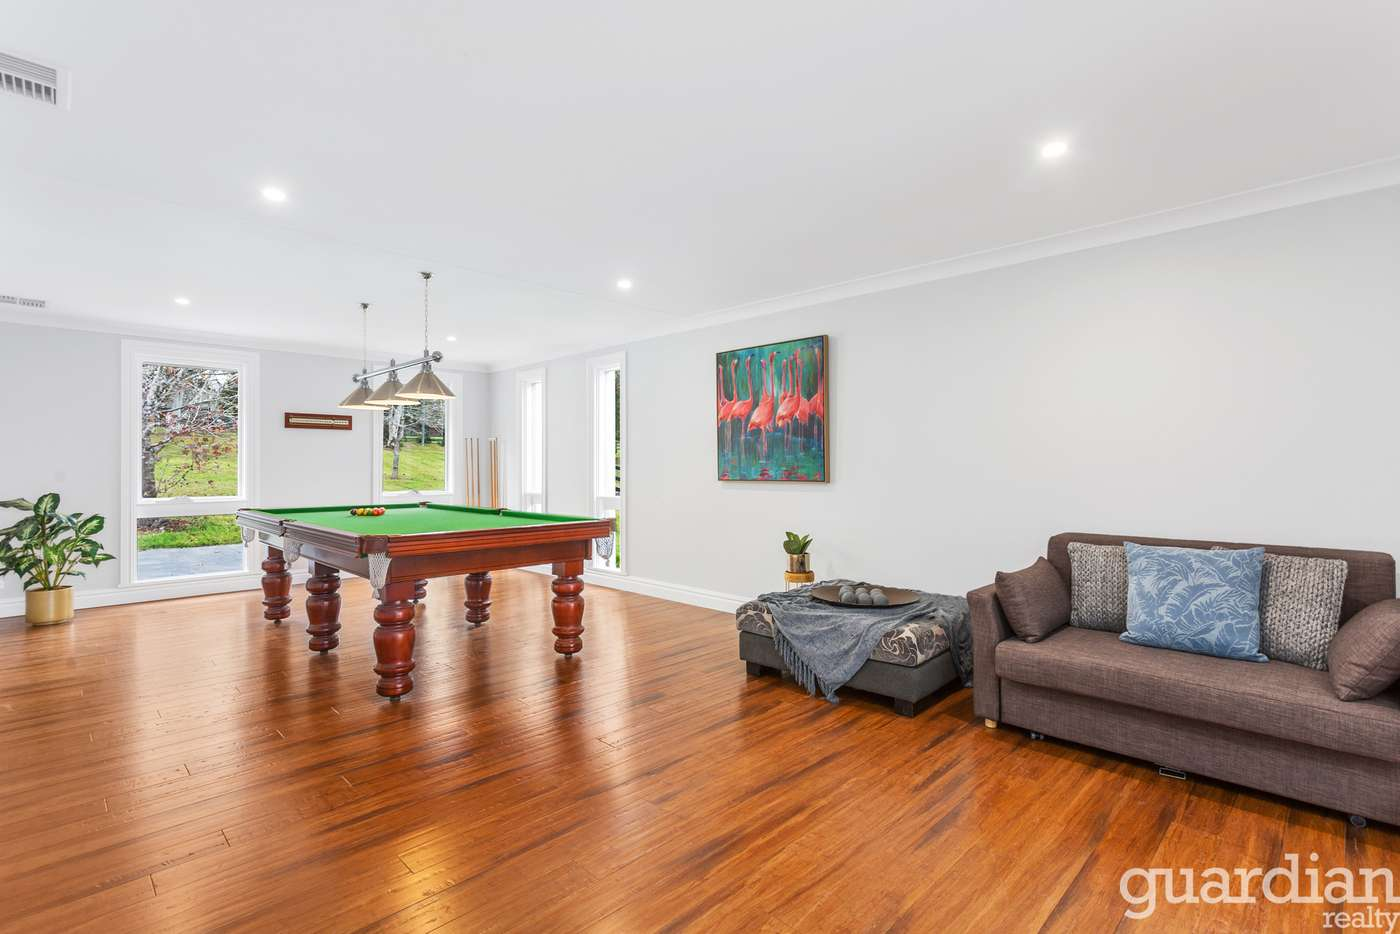 Fifth view of Homely house listing, 4 Hazeldean Place, Kenthurst NSW 2156